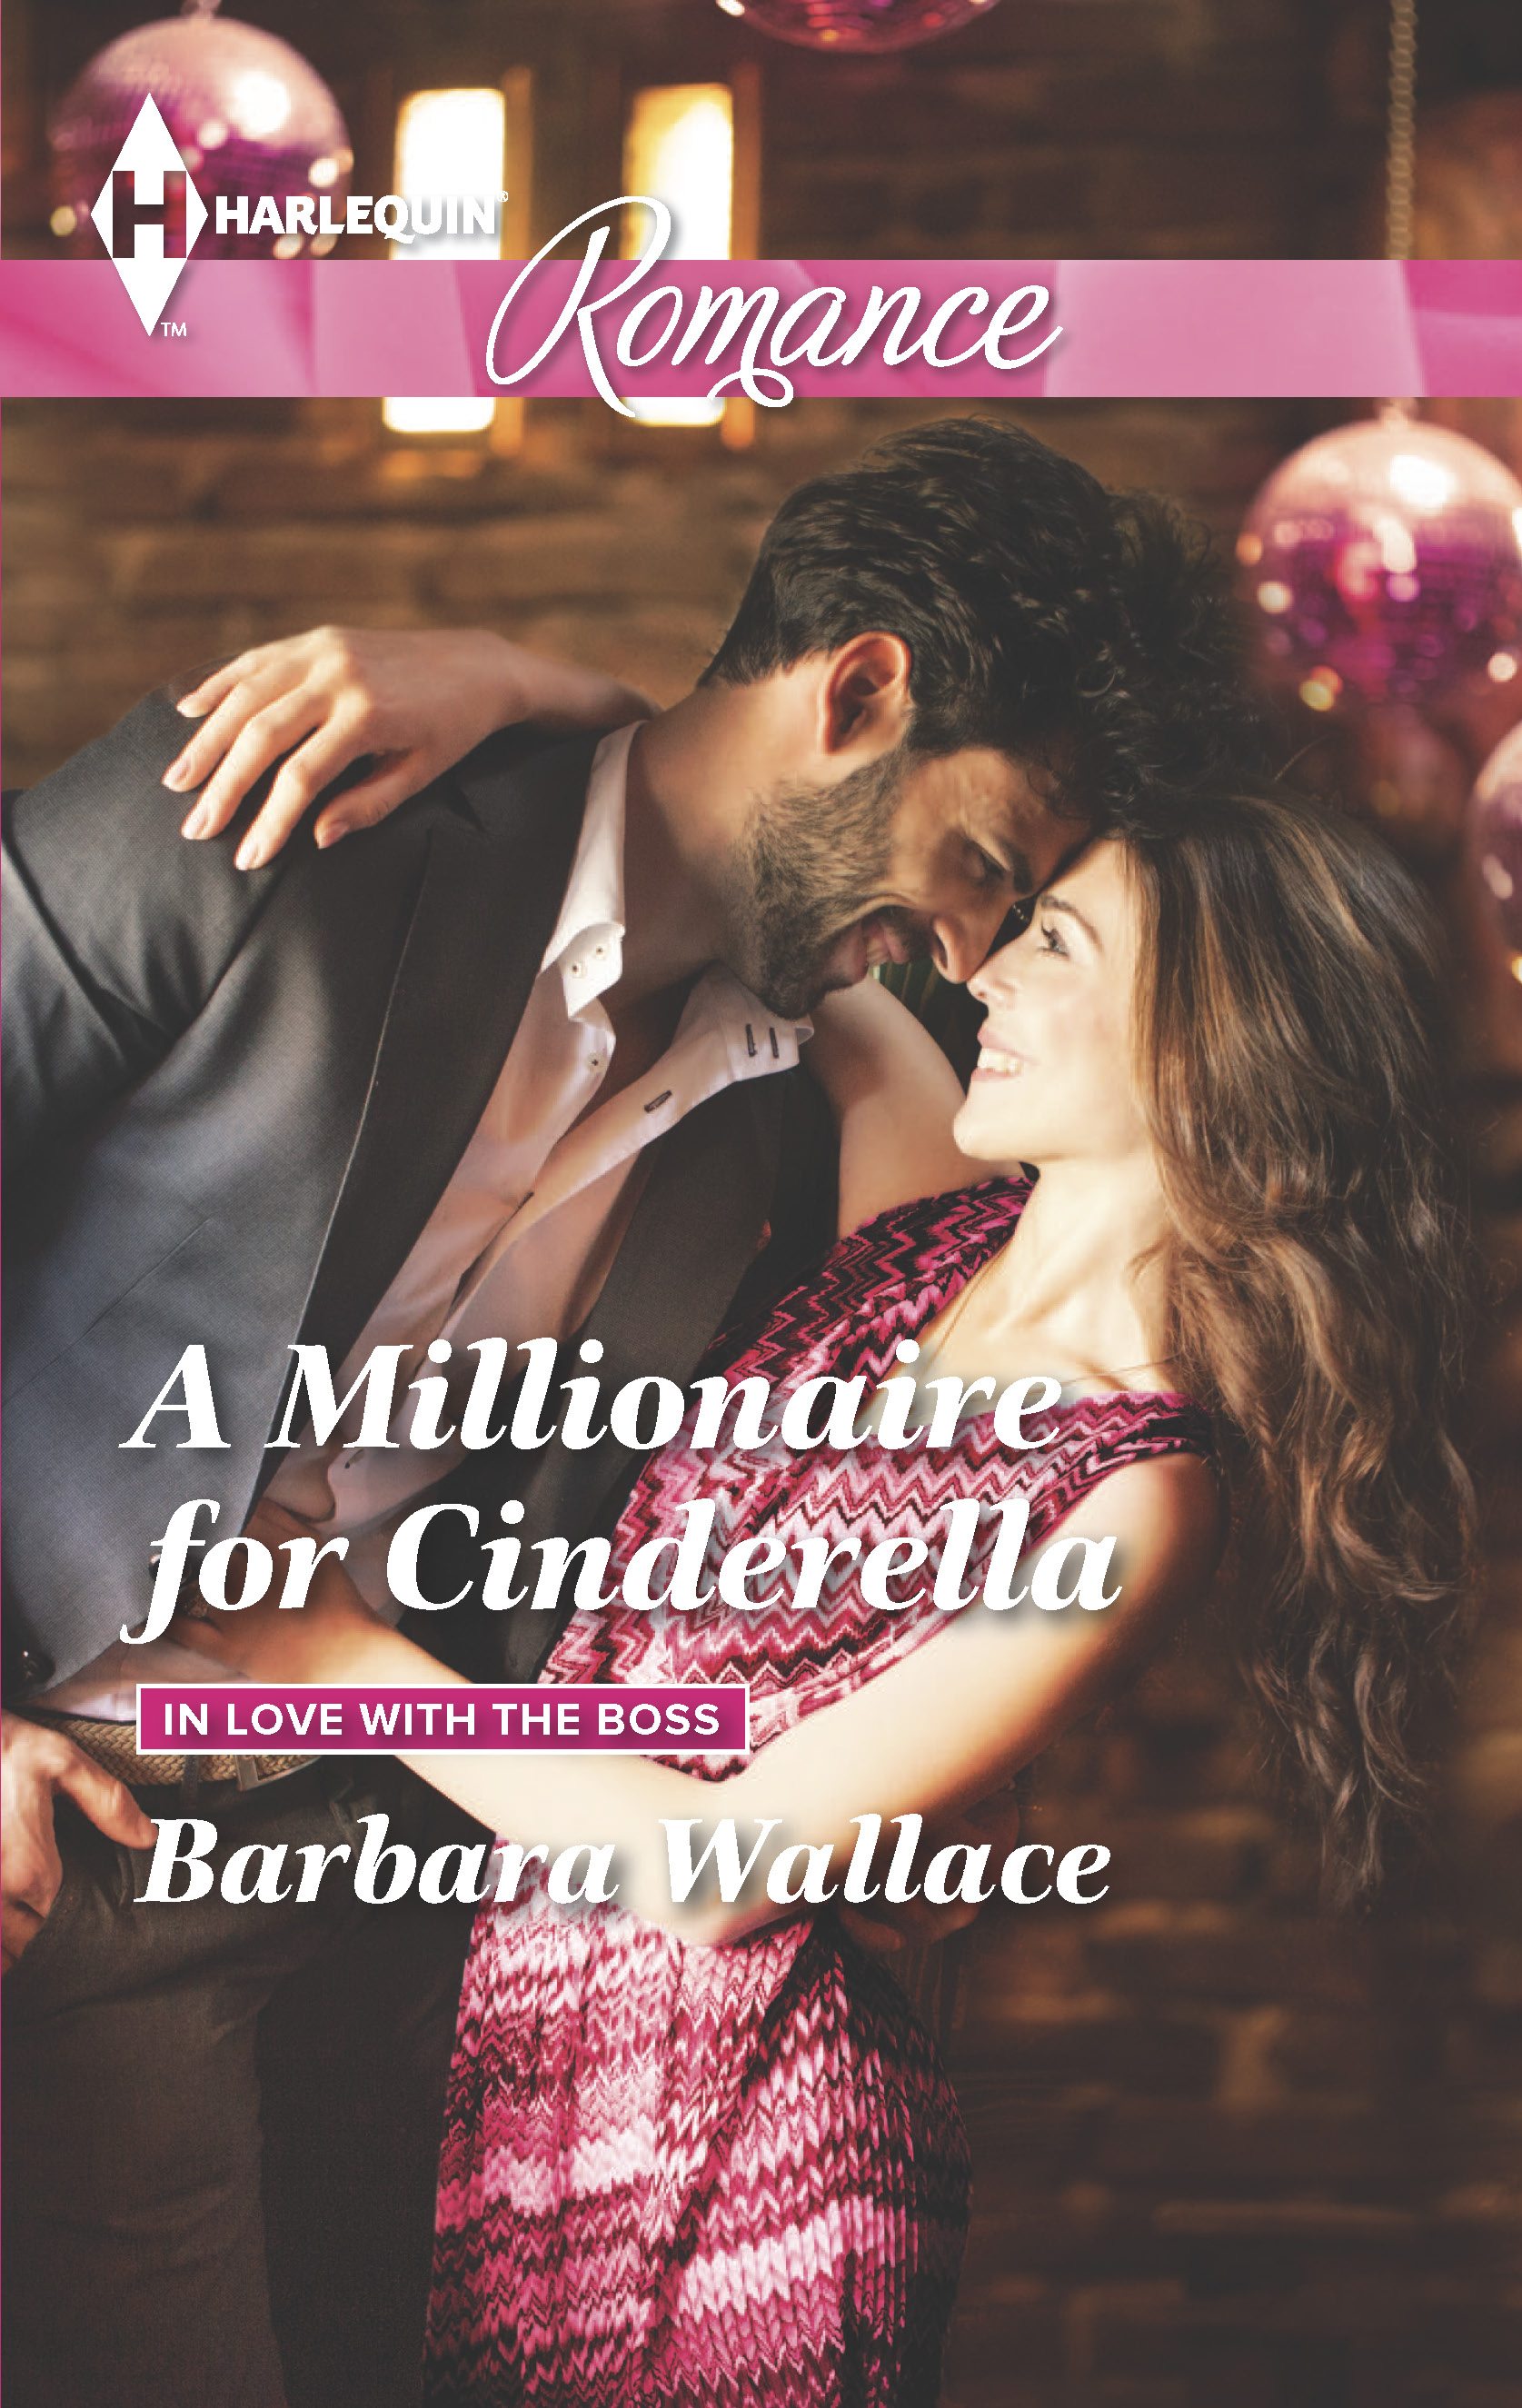 A Millionaire for Cinderella - Chapter 1 - Barbara Wallace, Romance